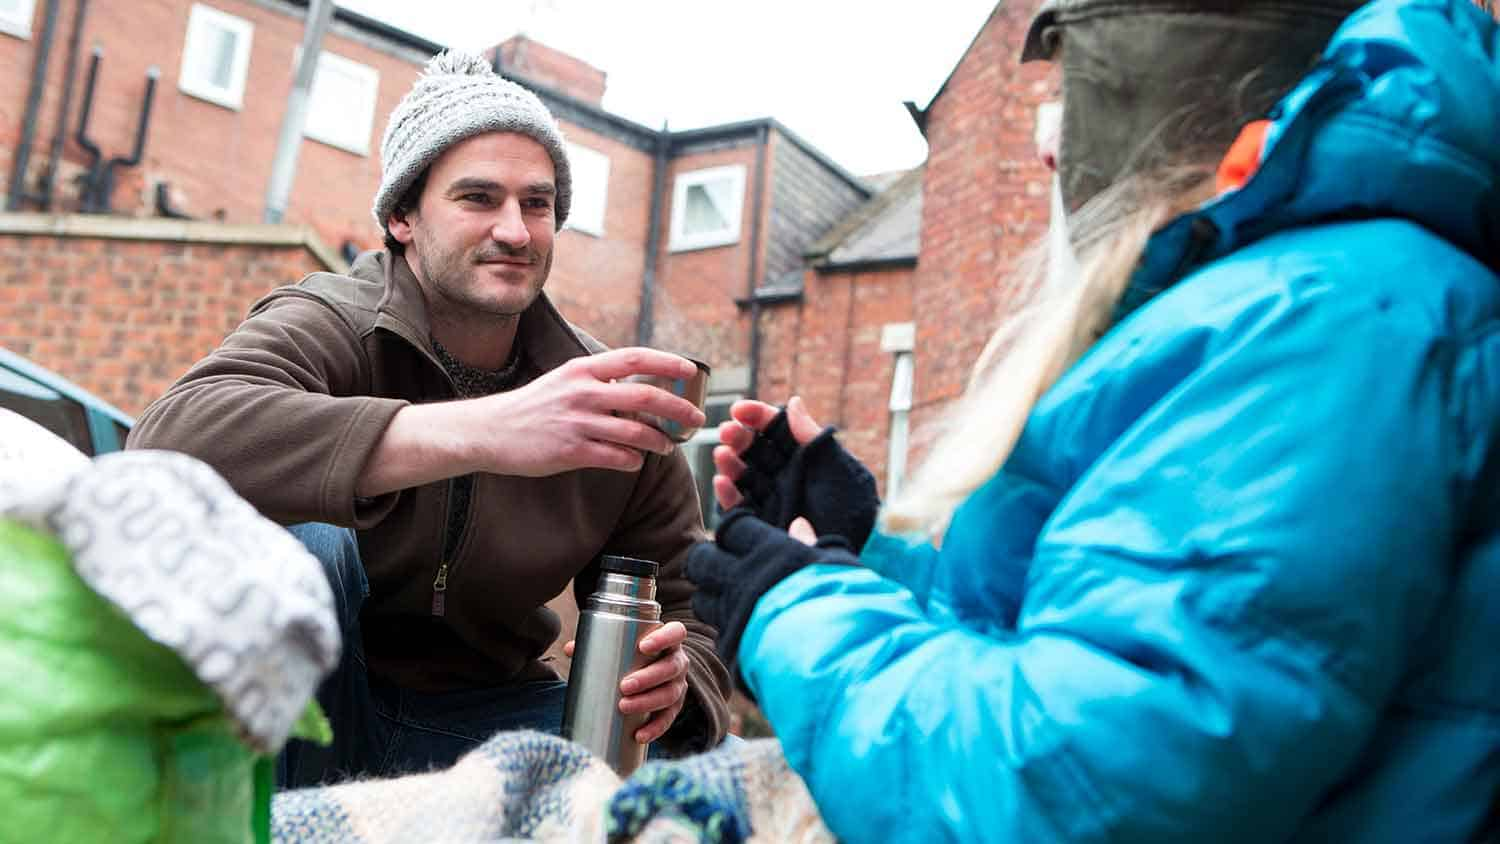 A volunteer sharing a cup of tea with a homeless person